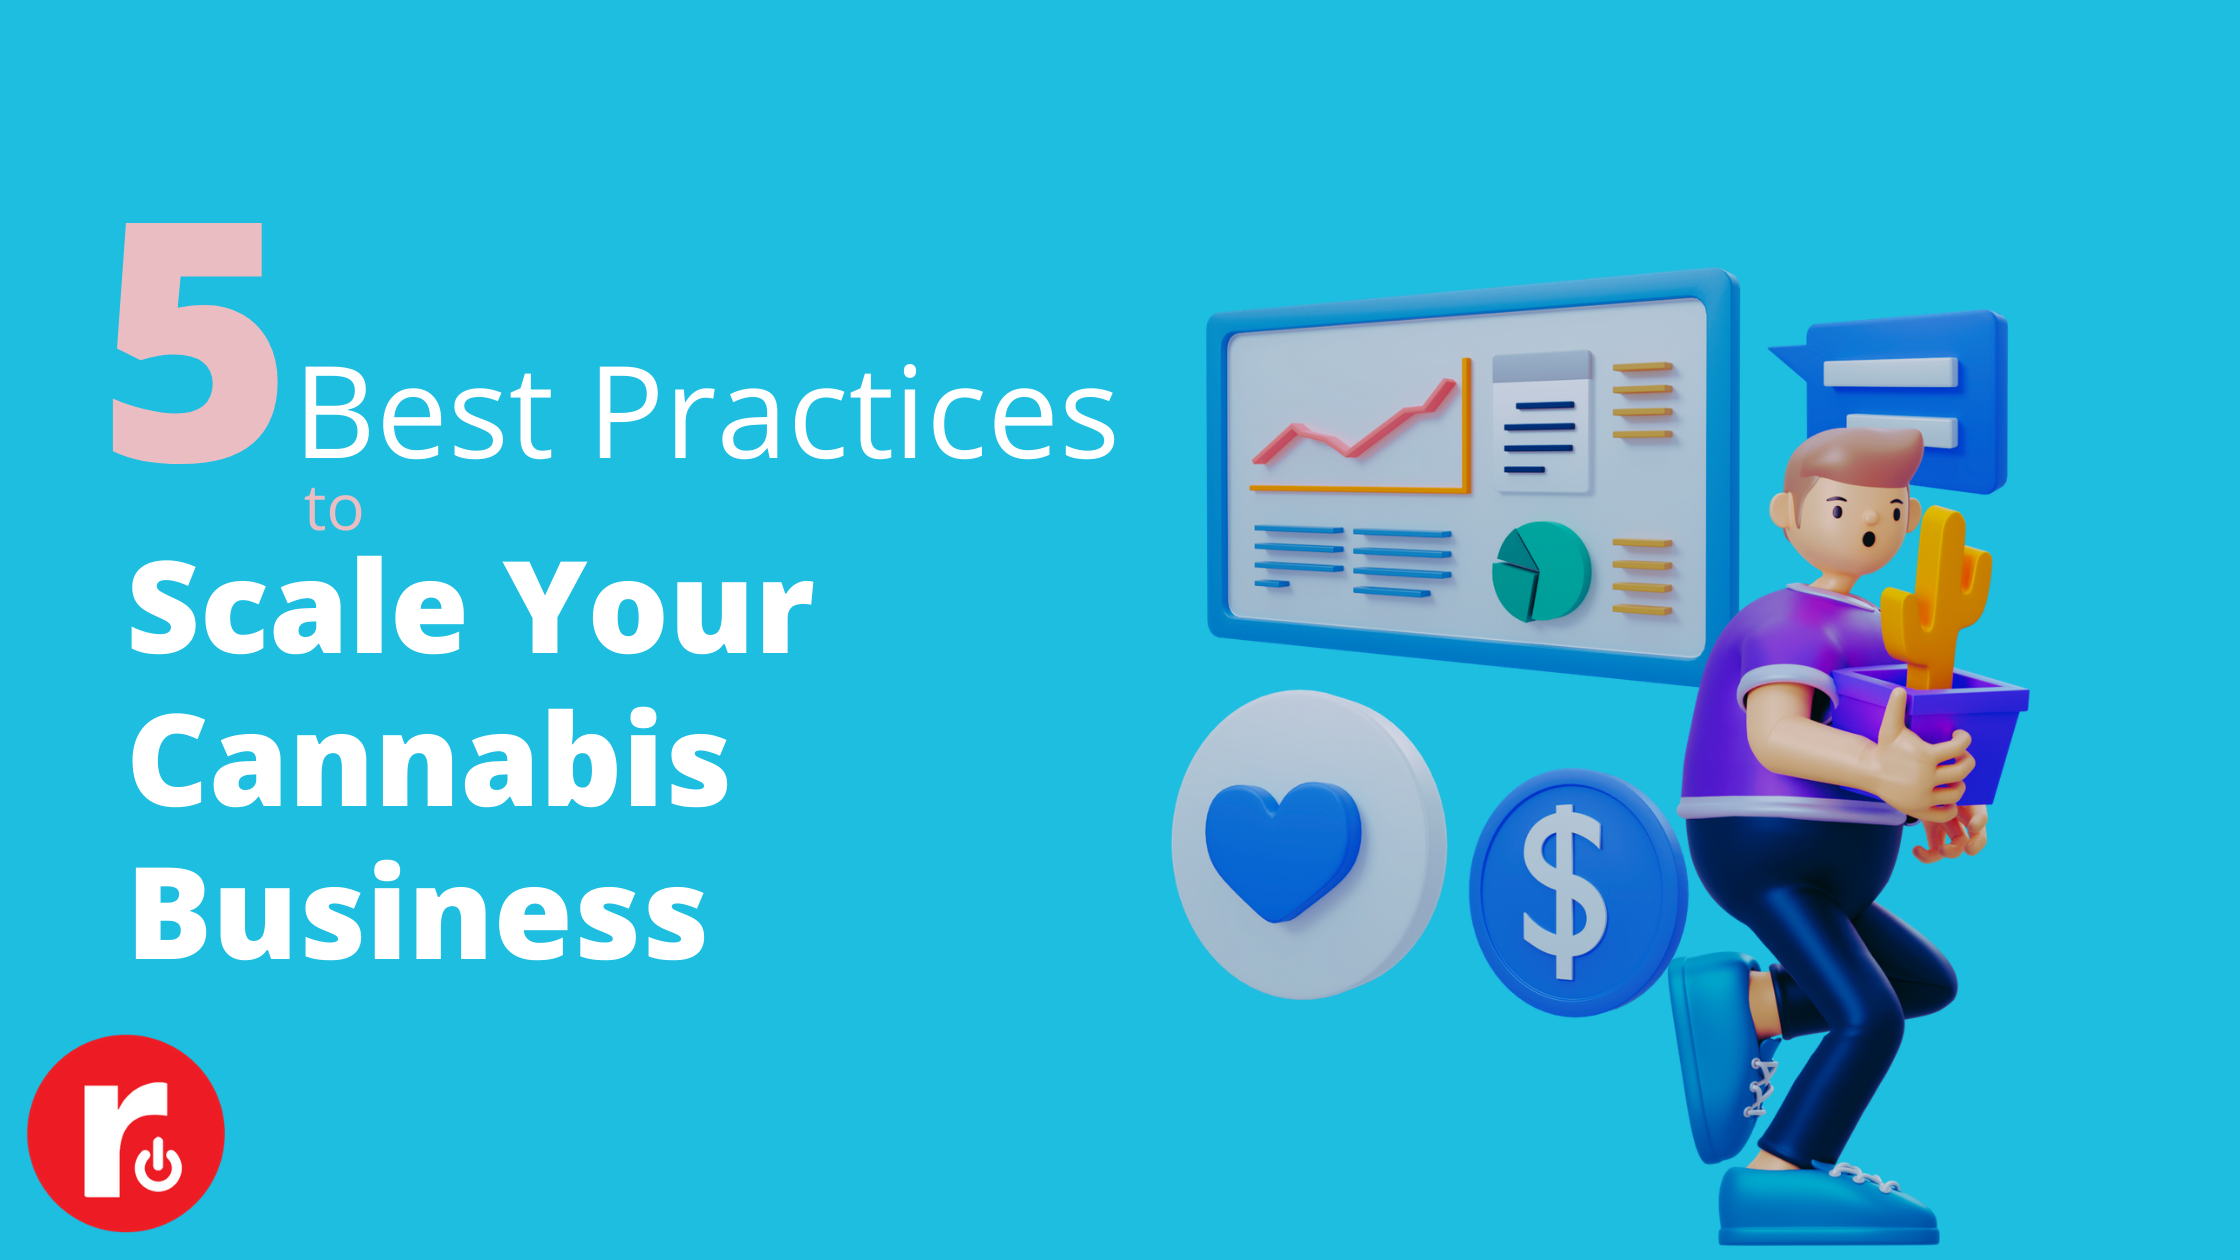 Scale Your Cannabis Distribution Business